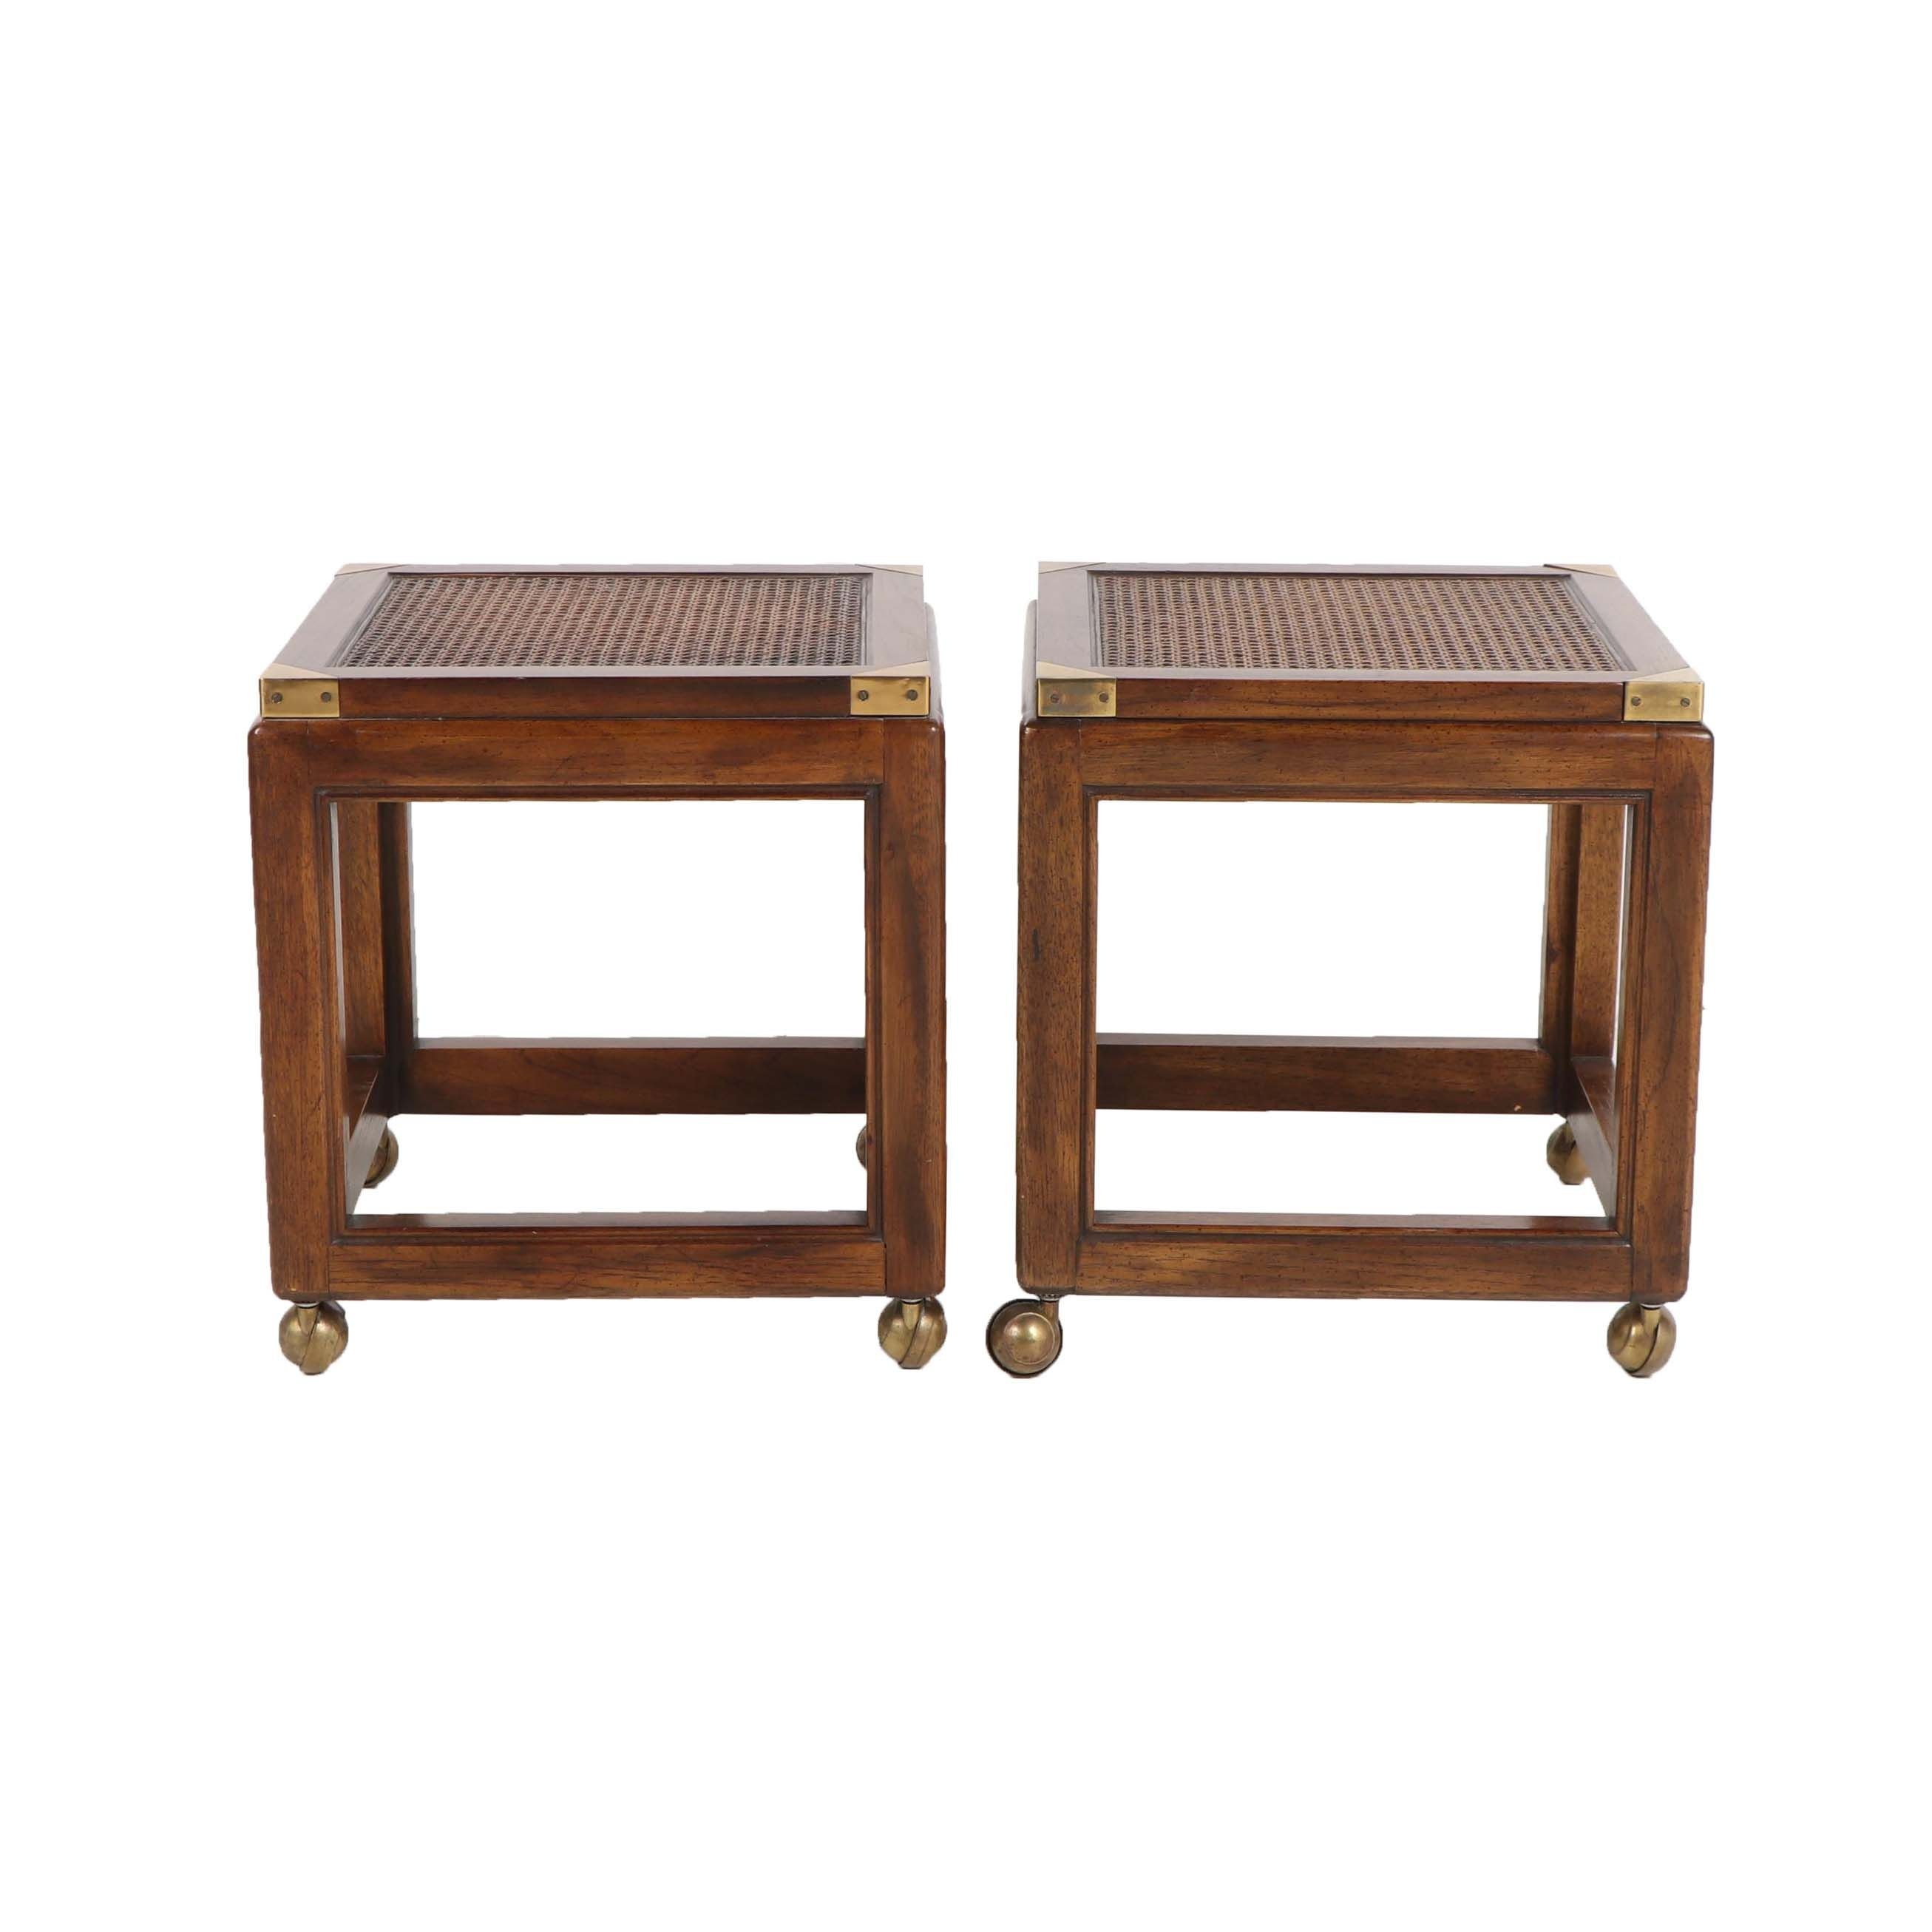 Walnut and Cane Panel Side Tables, Mid-20th Century